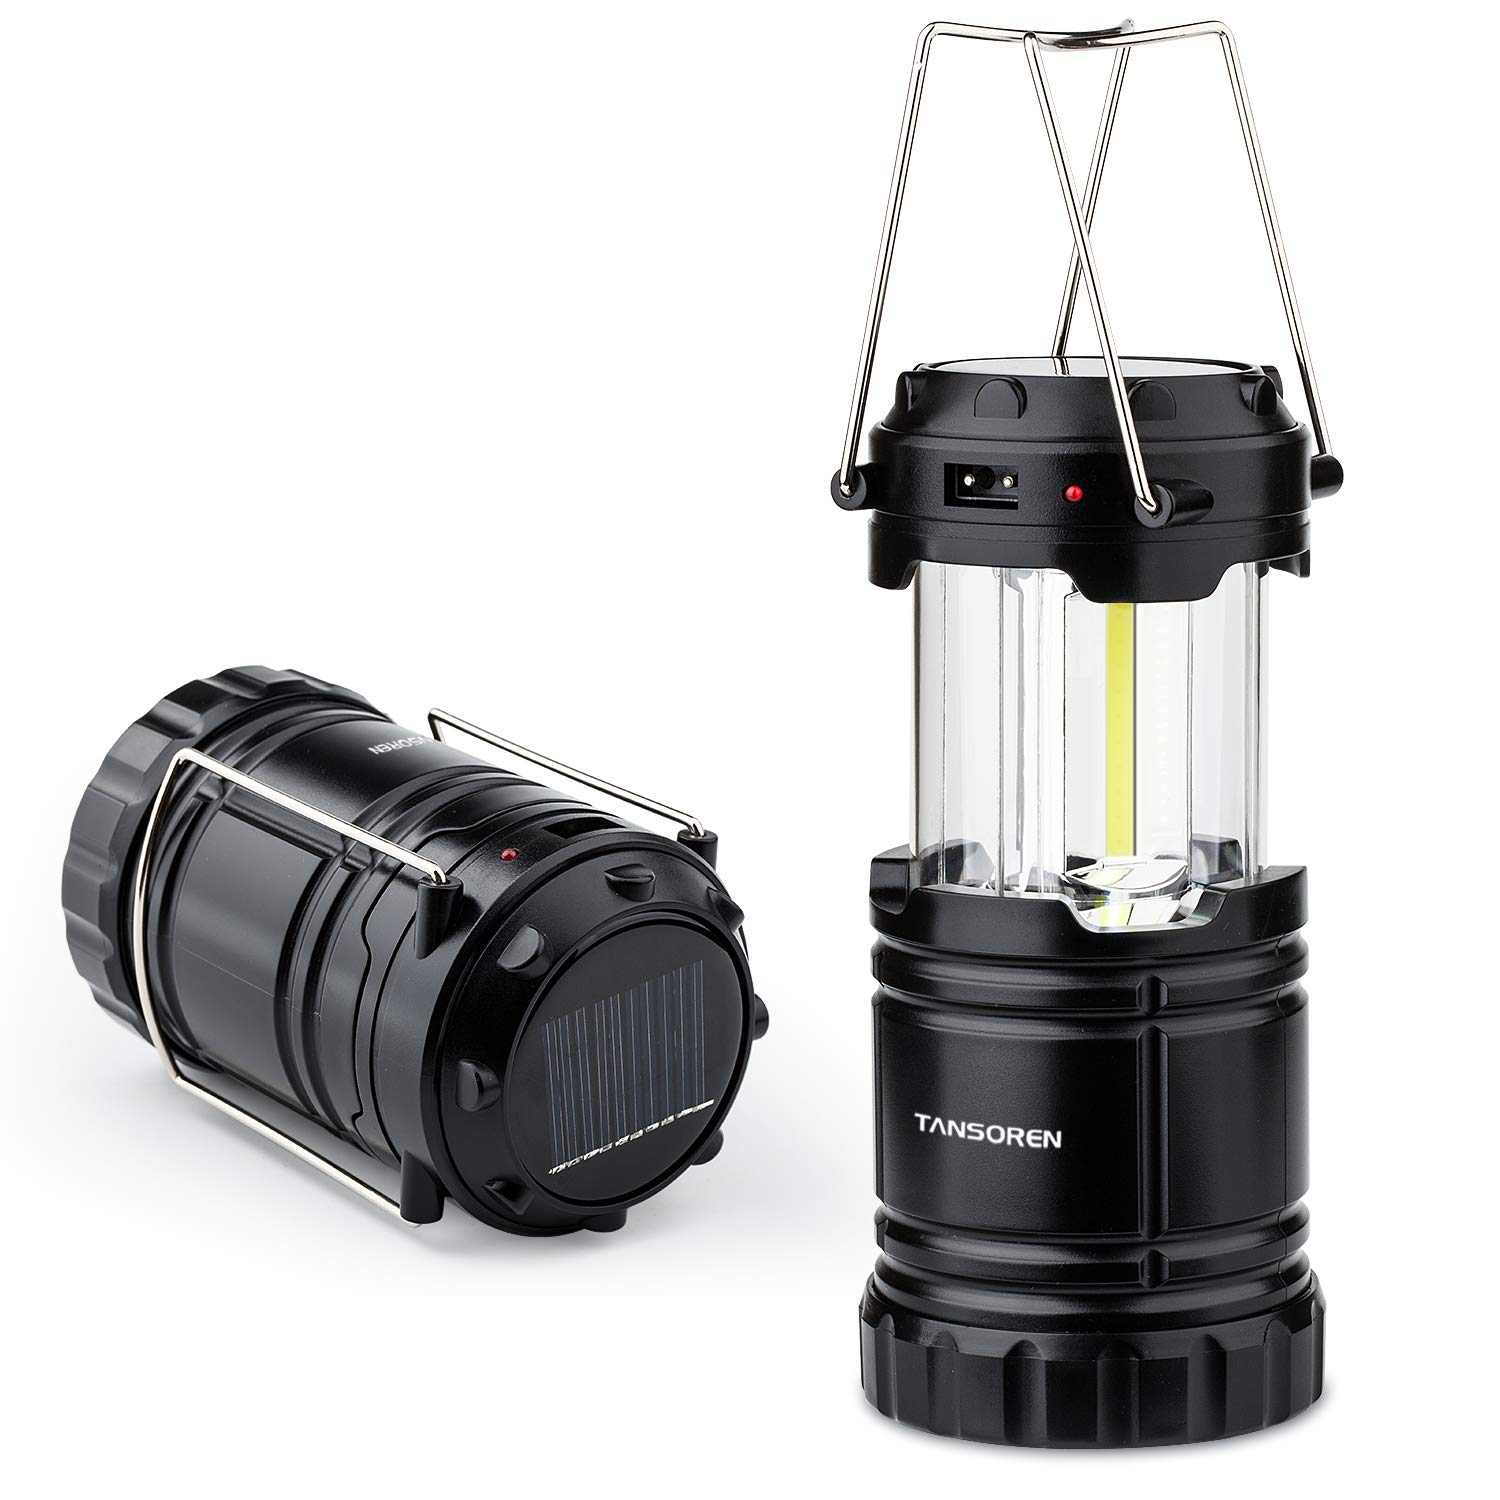 2 Pack Solar USB Rechargeable 3 AA Power Brightest COB LED Camping Lantern with Magnetic Base, Built-in Power Bank Compati Android Charge, Waterproof Collapsible Emergency LED Light 【2018 UPGRADED】